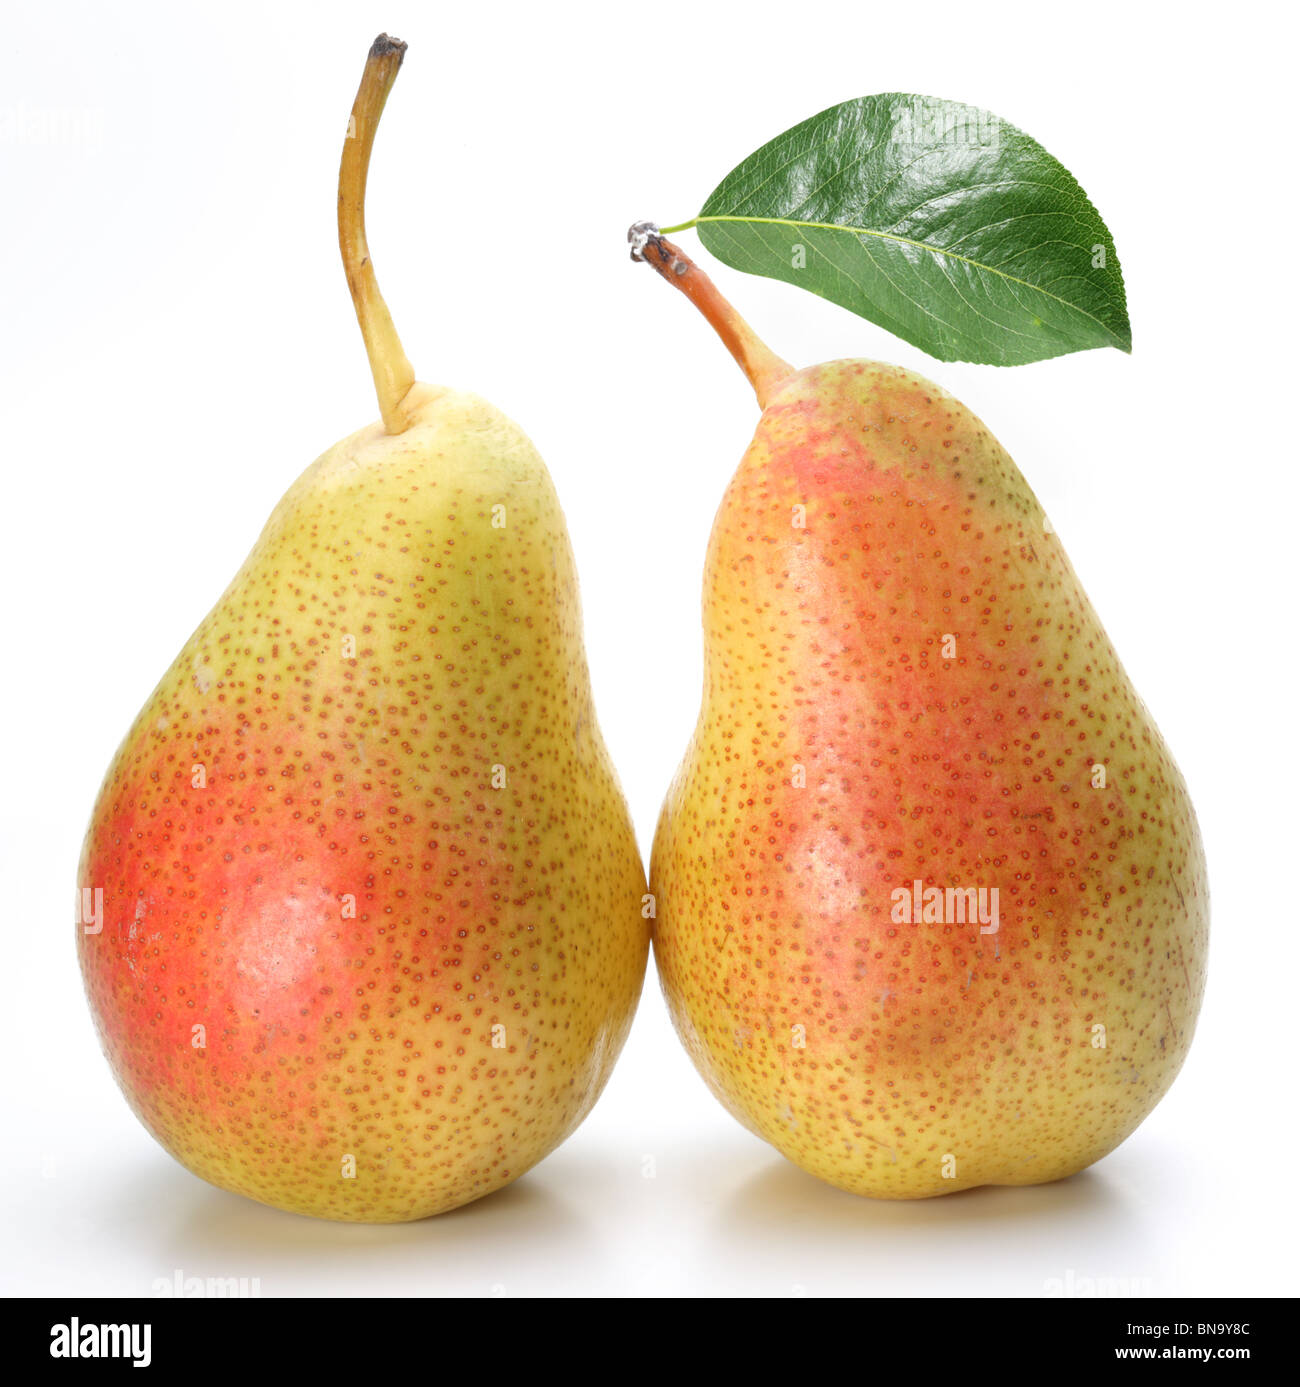 Two appetizing pears with a leaf. Isolated on a white background. - Stock Image